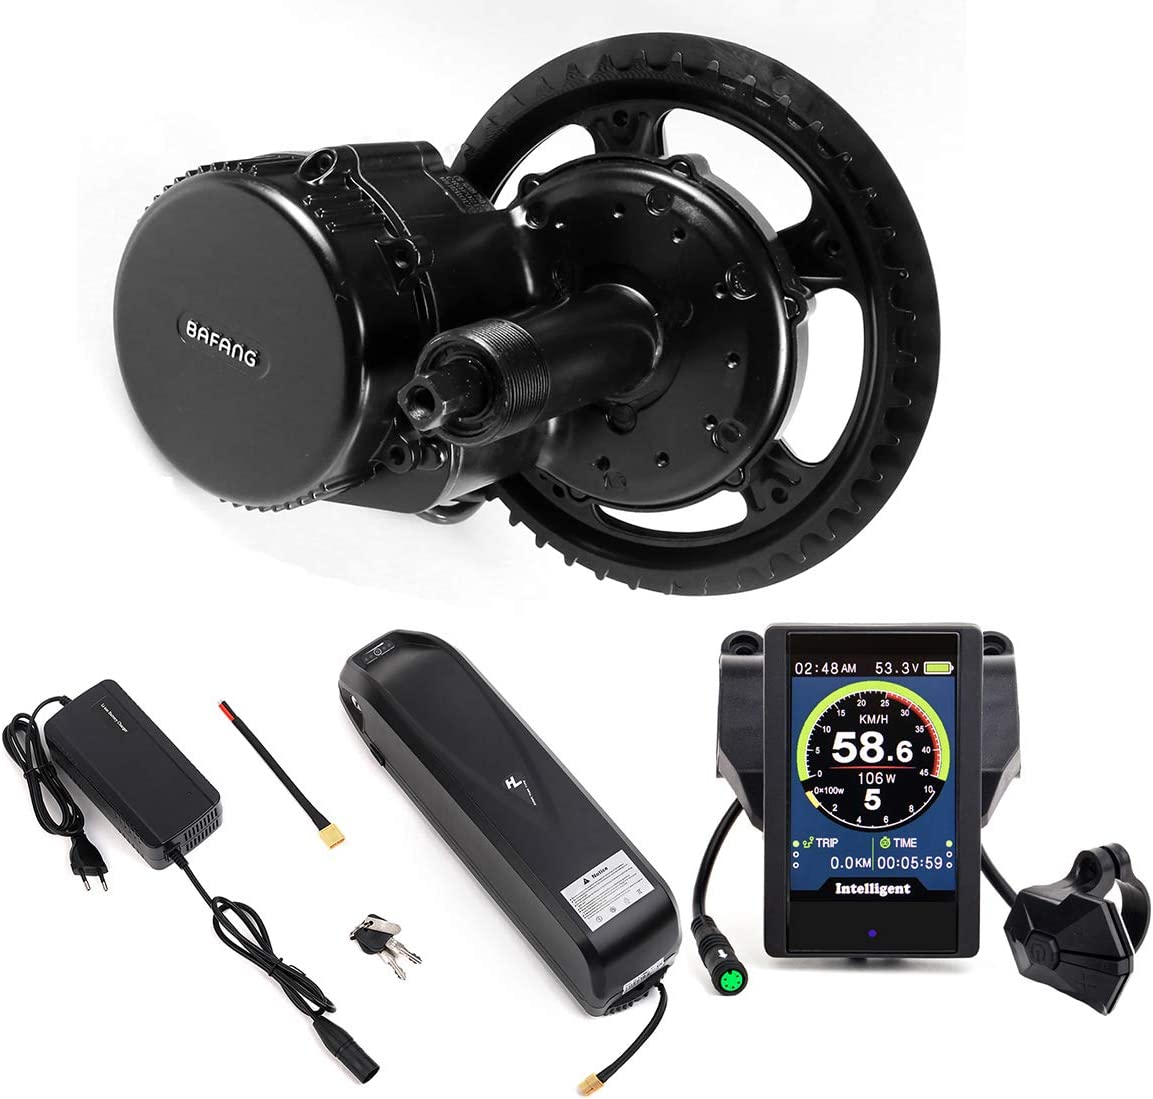 Bafang 48V 750W Mid Drive Electric Bike Conversion Kit